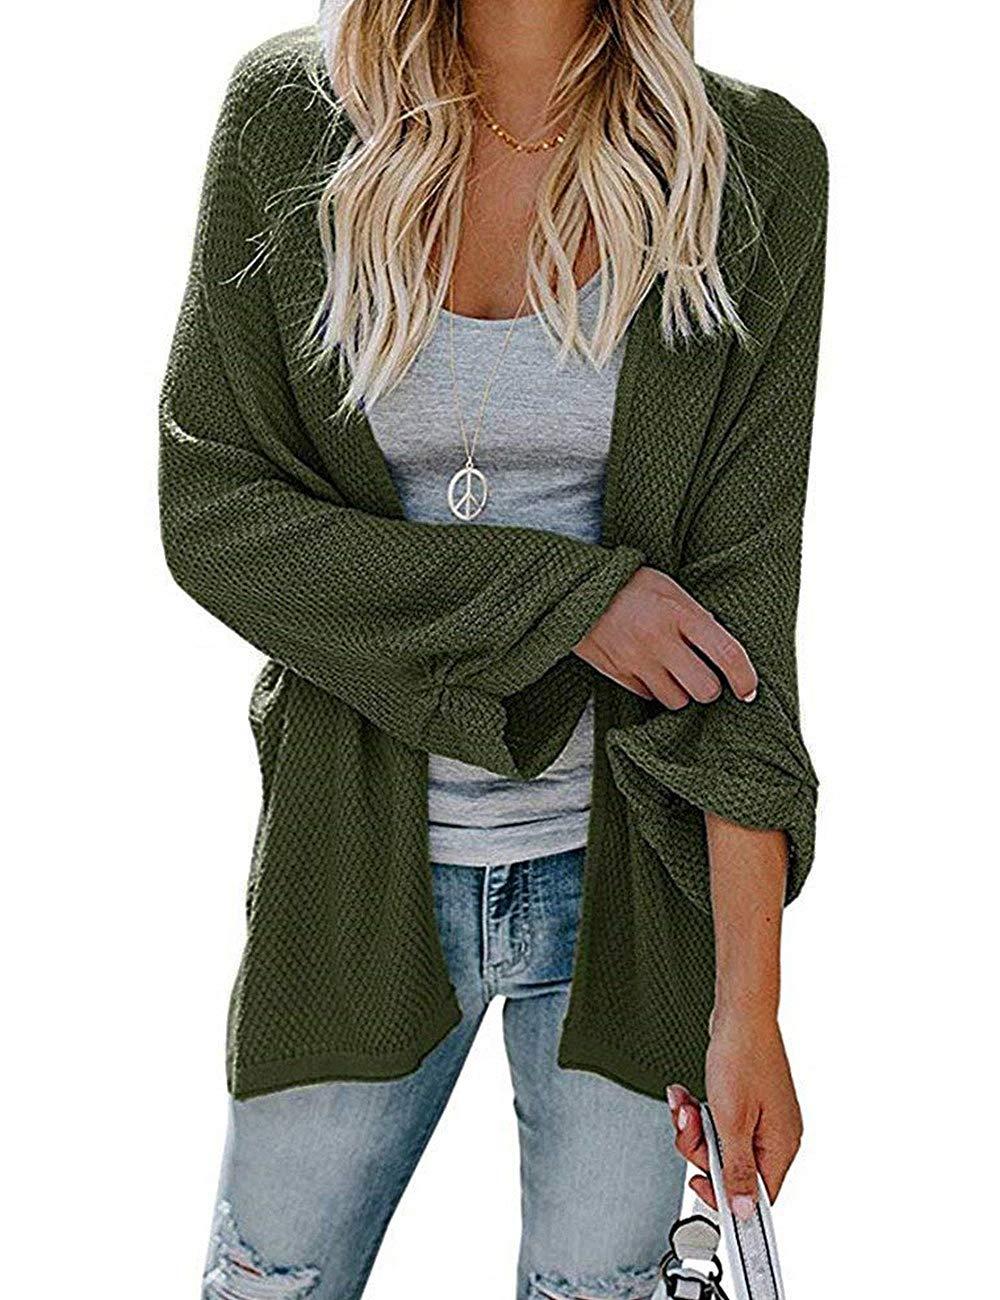 PARIS HILL Softome Womens Long Sleeve Cardigans Oversized Open Front Basic Casual Knit Sweaters Coat Army Green XX Large by PARIS HILL (Image #3)